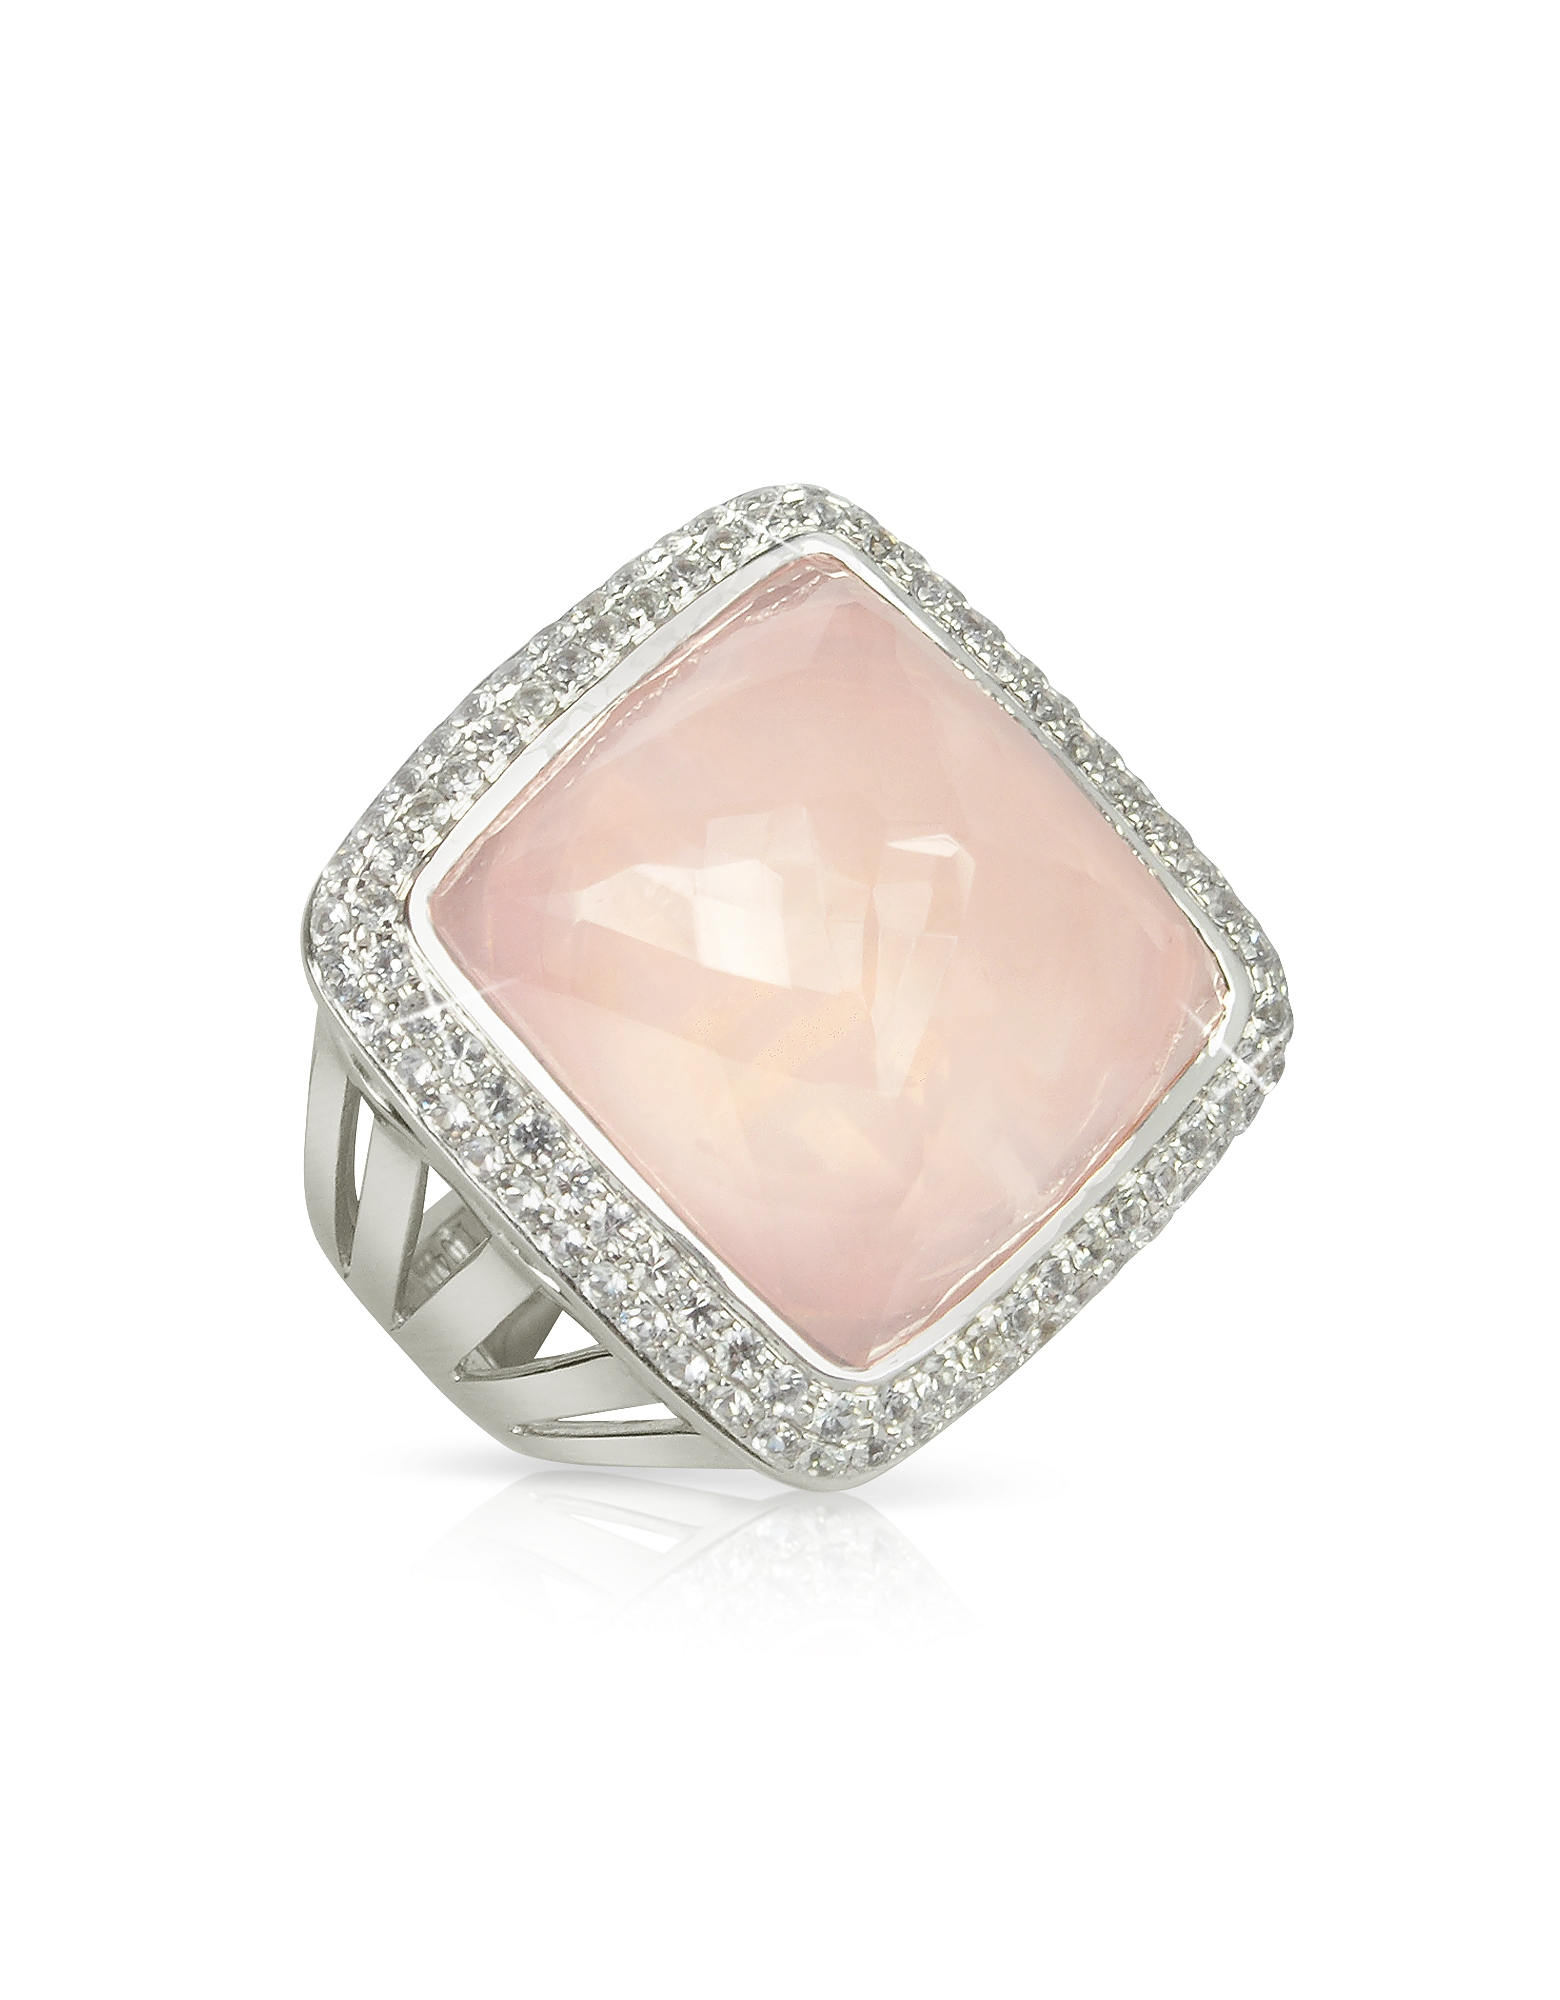 Sho London Rings, 18K Gold V-Seal Rose Quartz Victoria Ring